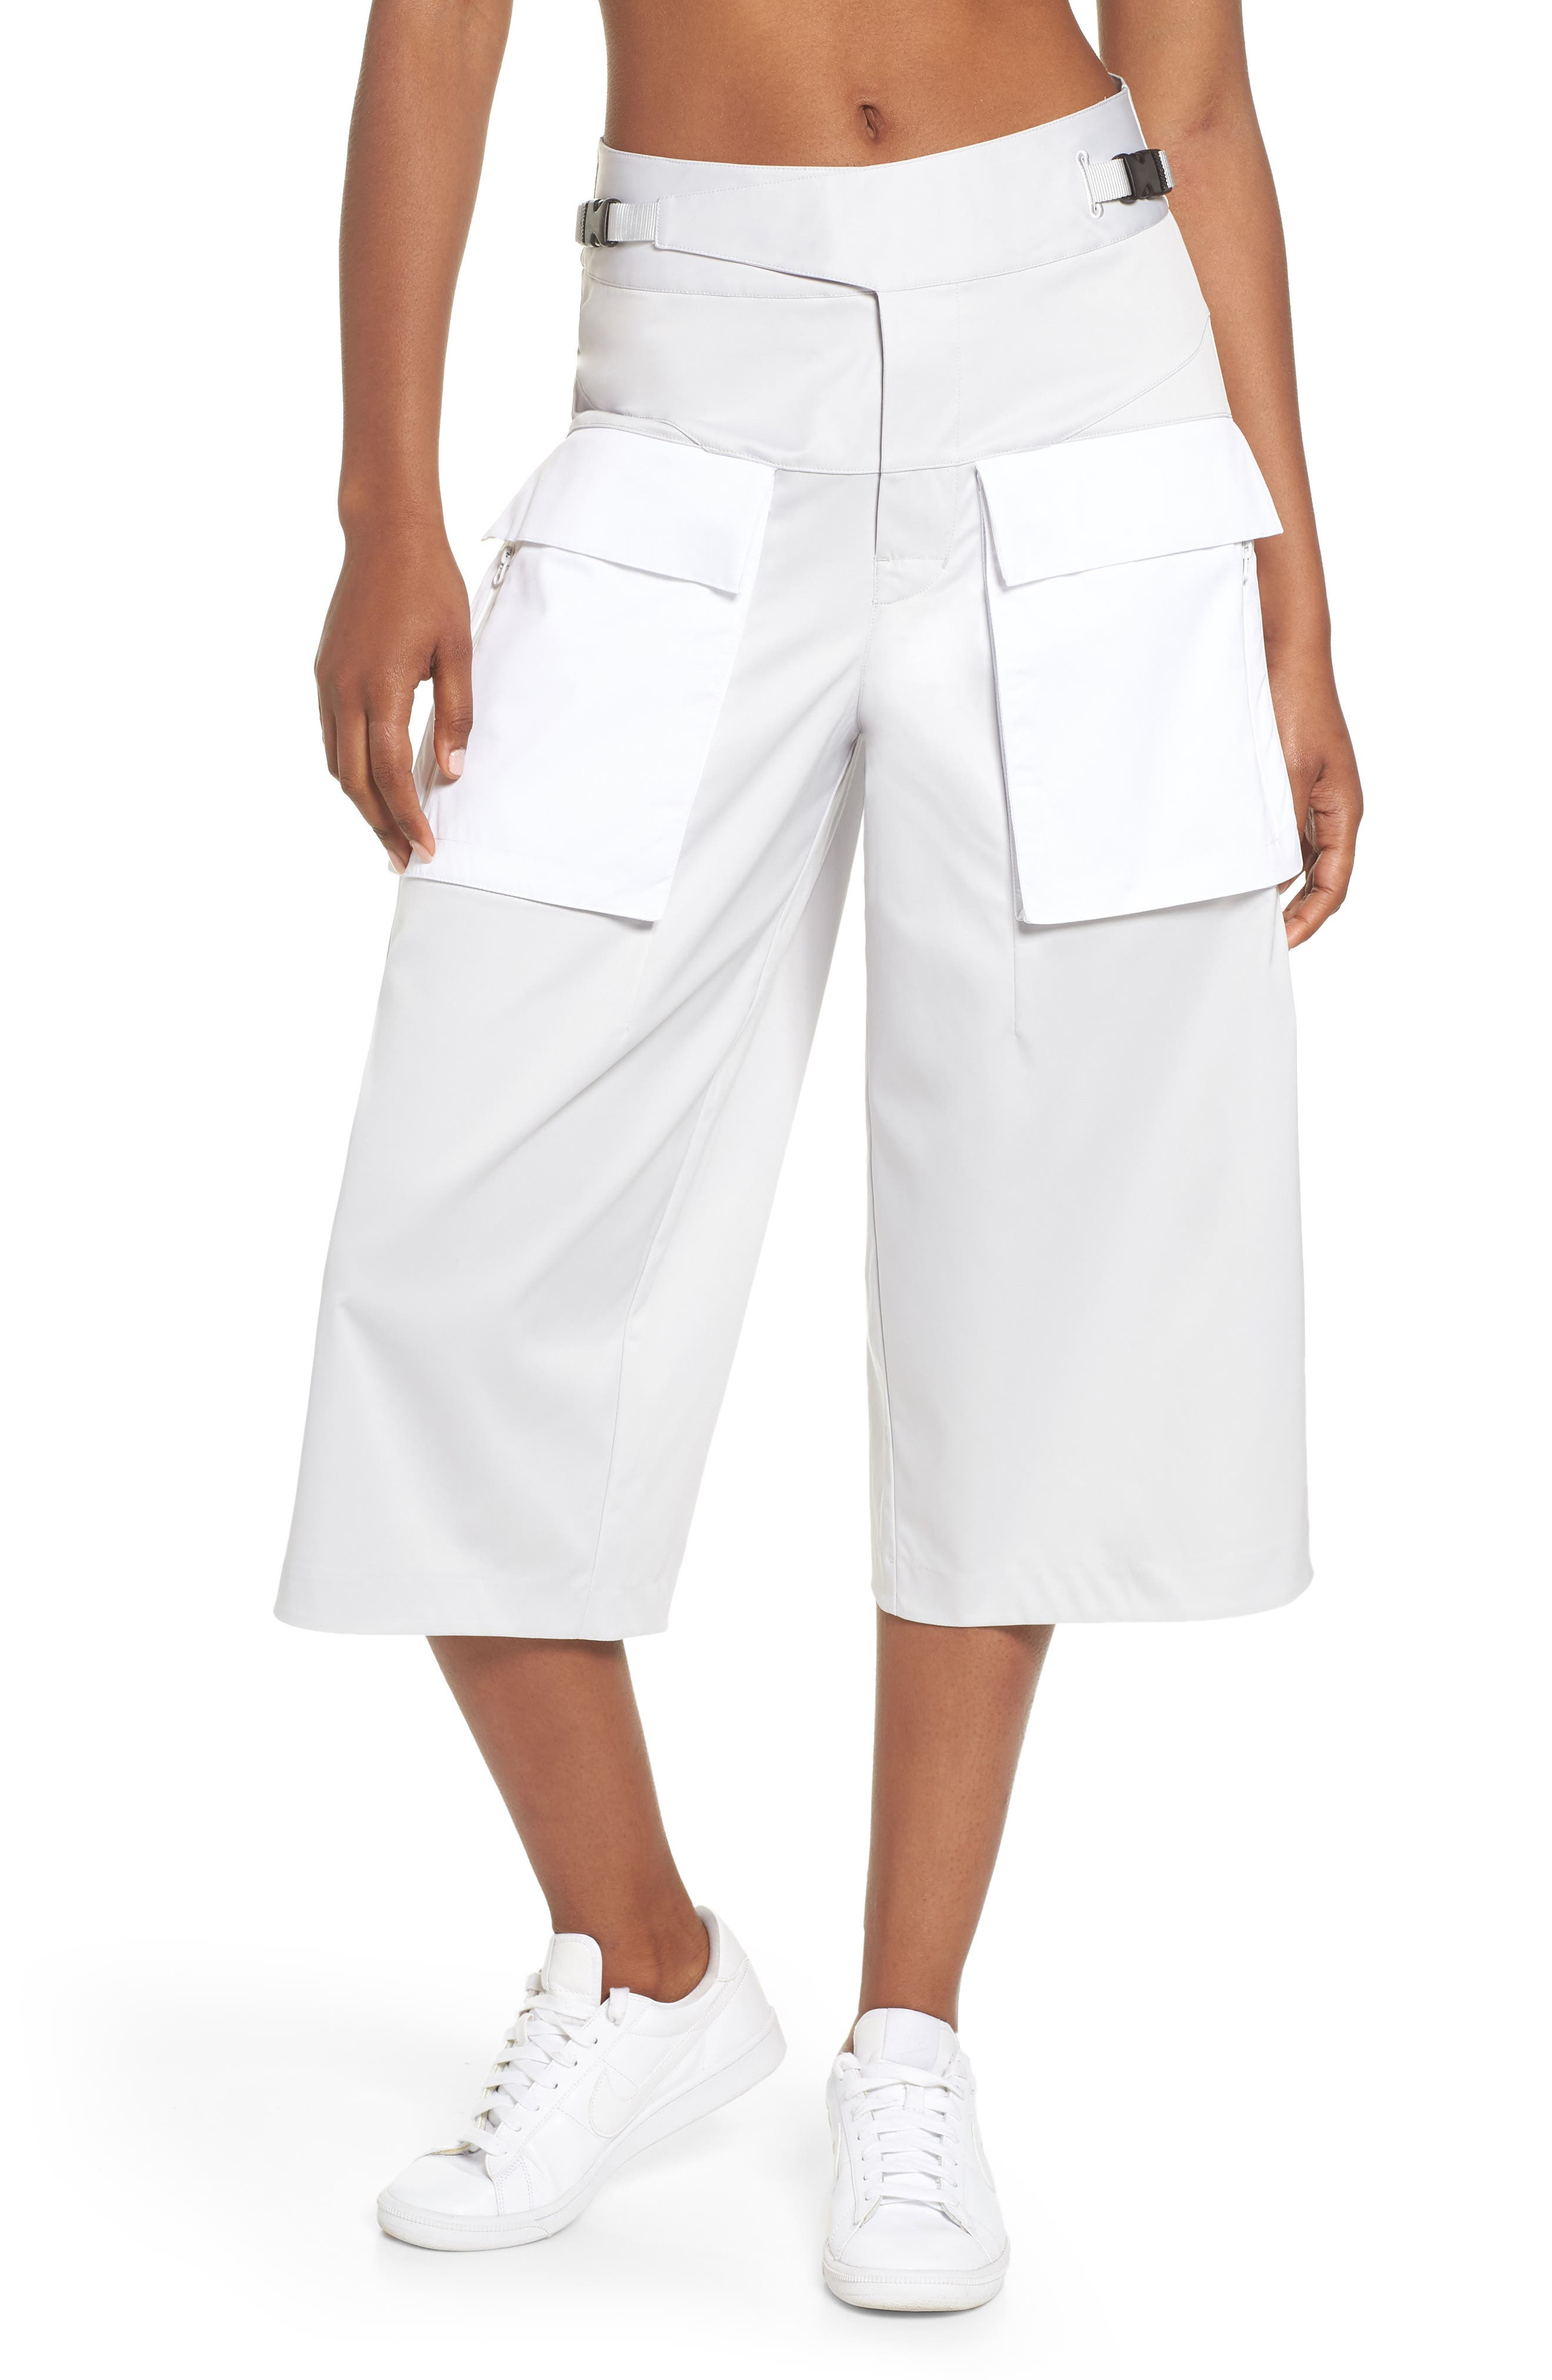 Utility Culottes,                         Main,                         color, Vast Grey/ White/ Vast Grey